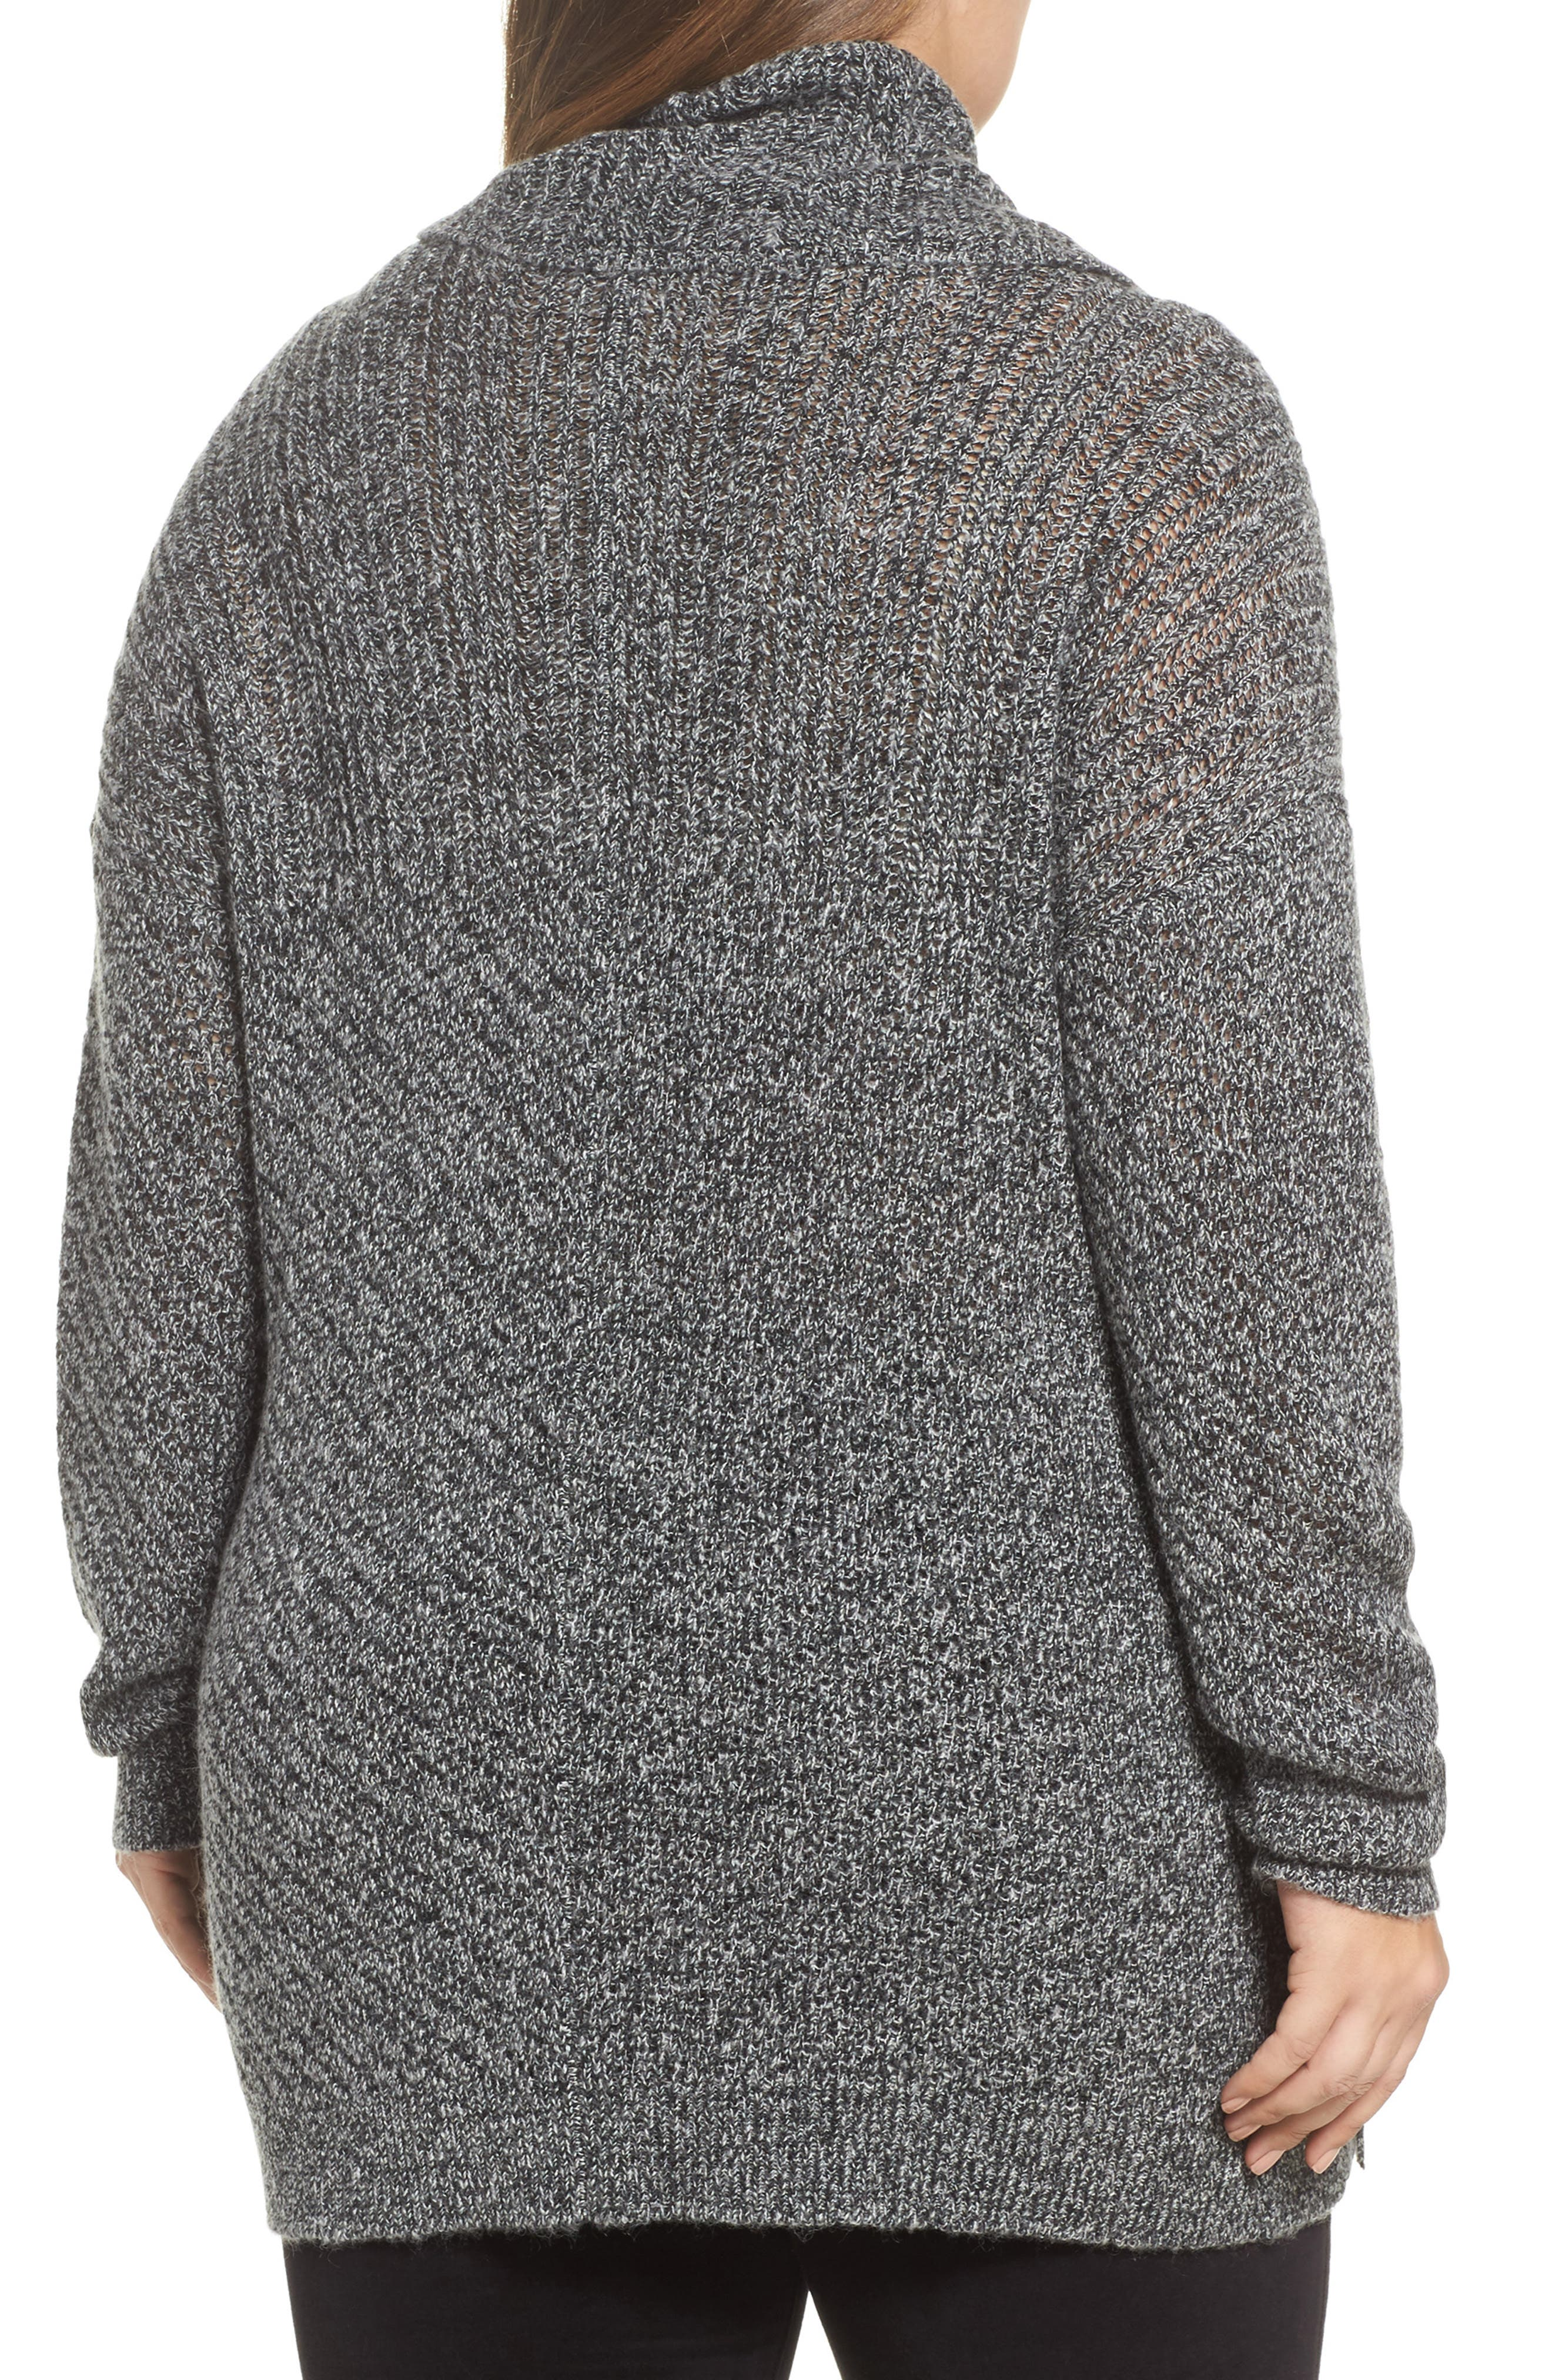 Button Side Sweater,                             Alternate thumbnail 2, color,                             009